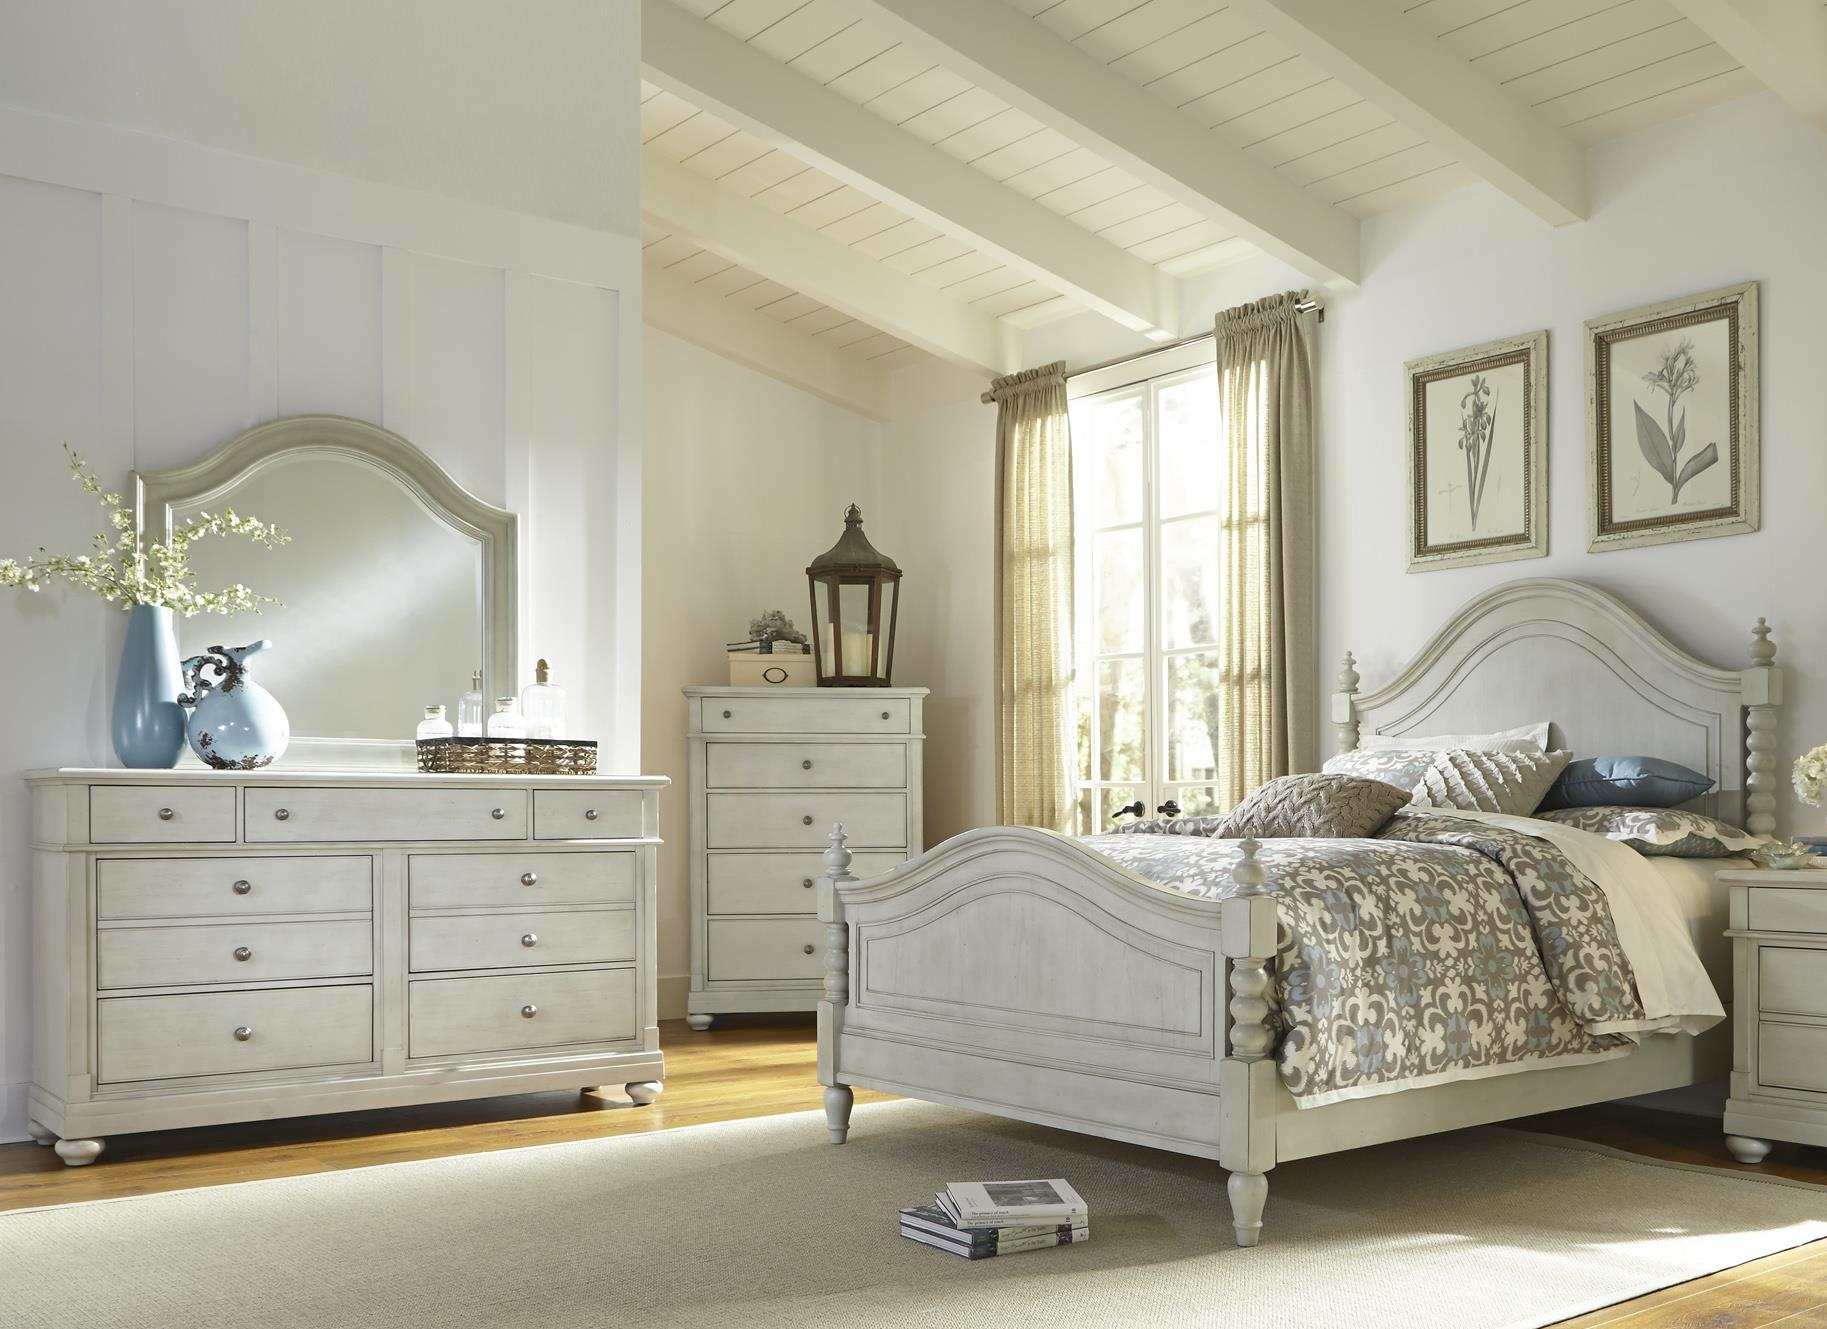 Liberty Furniture Harbor View King Bedroom Group - Item Number: 731-BR-KPSDMC